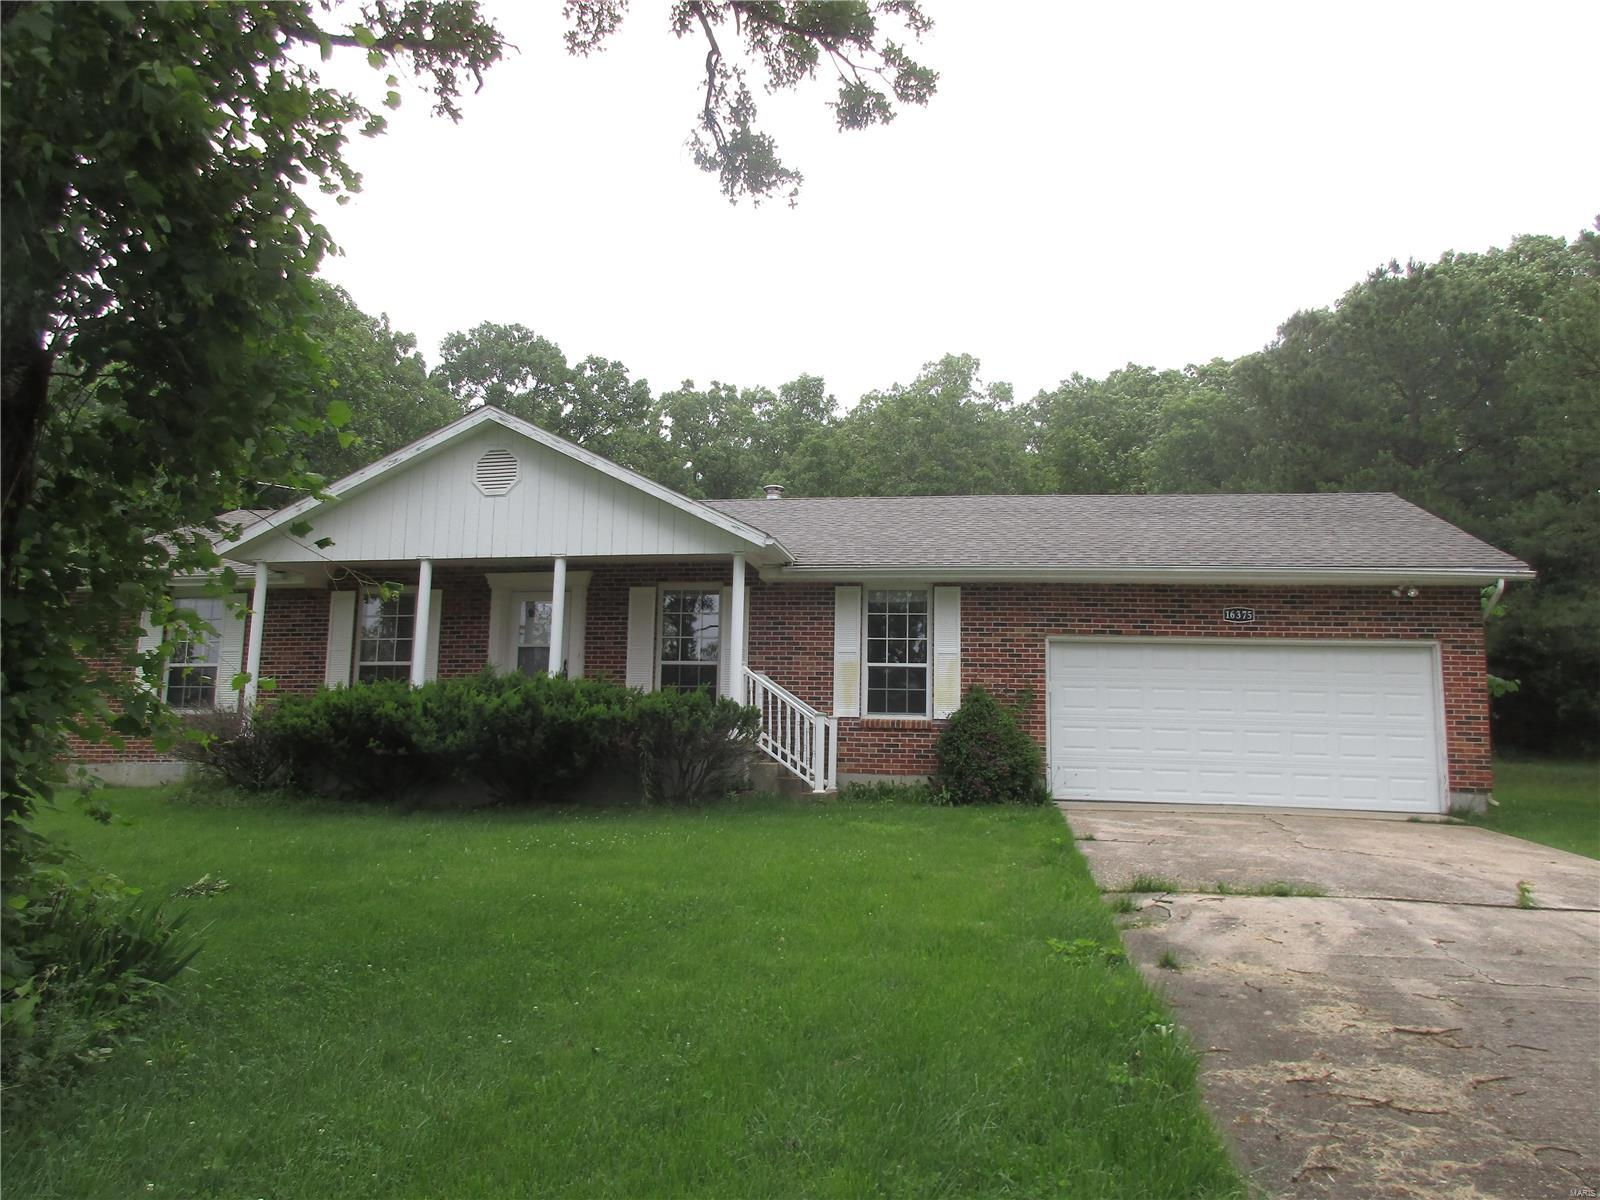 16375 Walter Property Photo - Plato, MO real estate listing